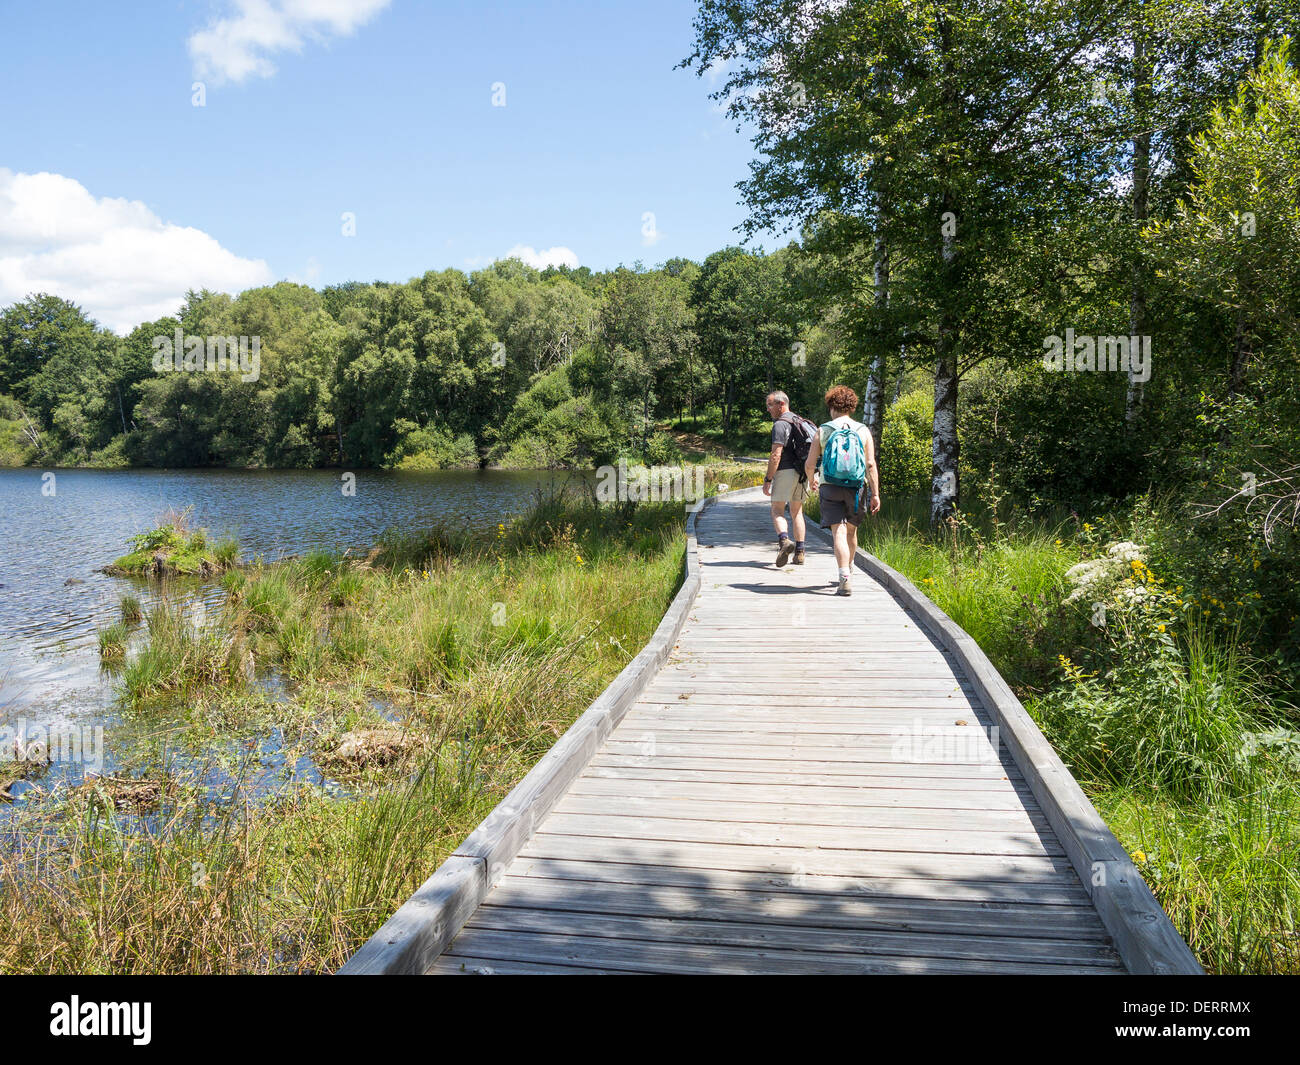 Walkers with rucksacks on a boardwalk at the edge of Lake Vassiviere in the Plateau de Millevanche regional park, Limousin - Stock Image